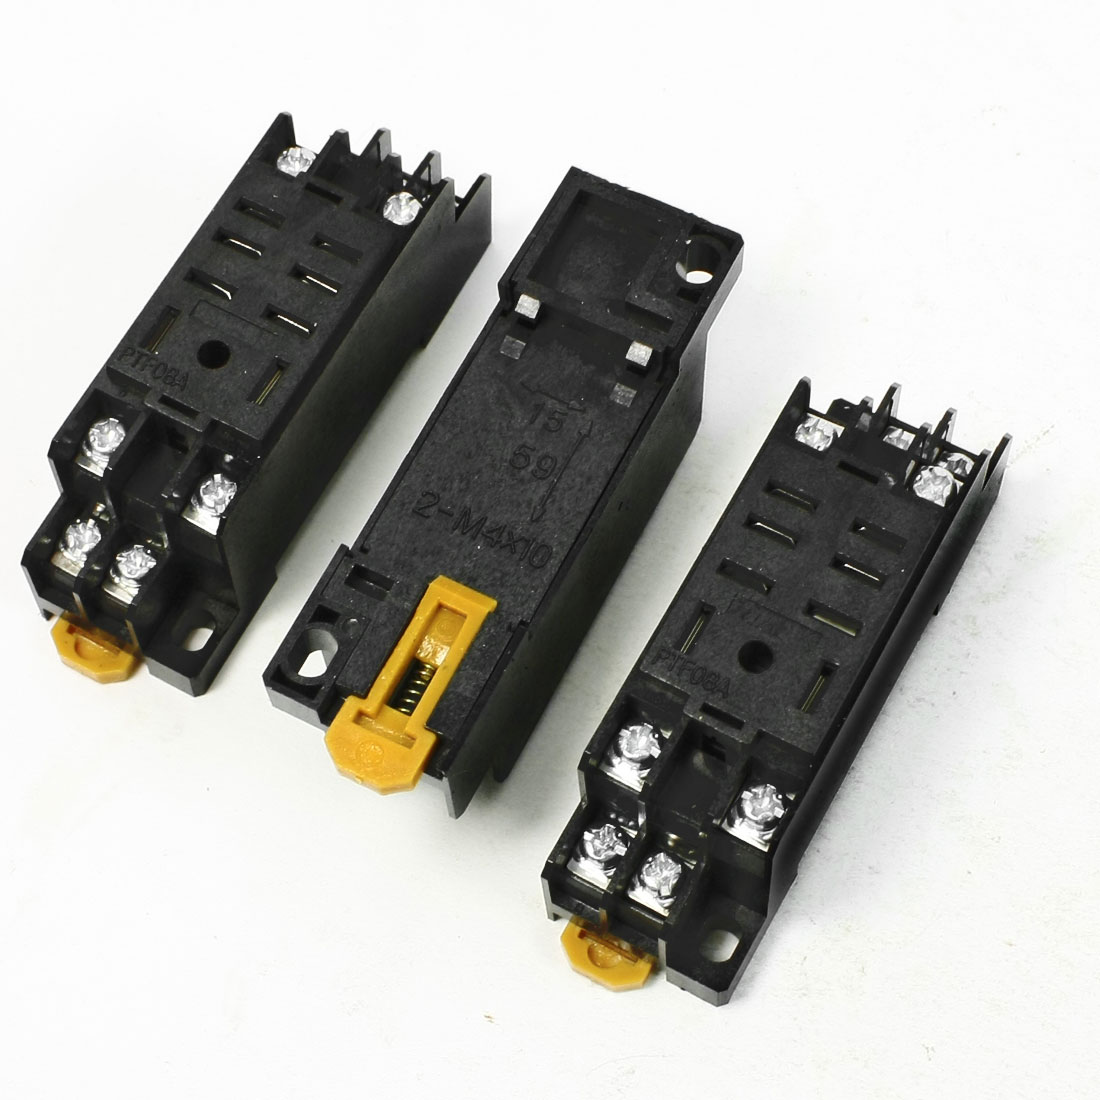 3 Pcs DIN Rail Mounting Plastic Relay Socket Base Holder for 8 Pin Relay PYF08A 3 pcs din rail mounting plastic relay socket base holder for 8 pin relay pyf08a